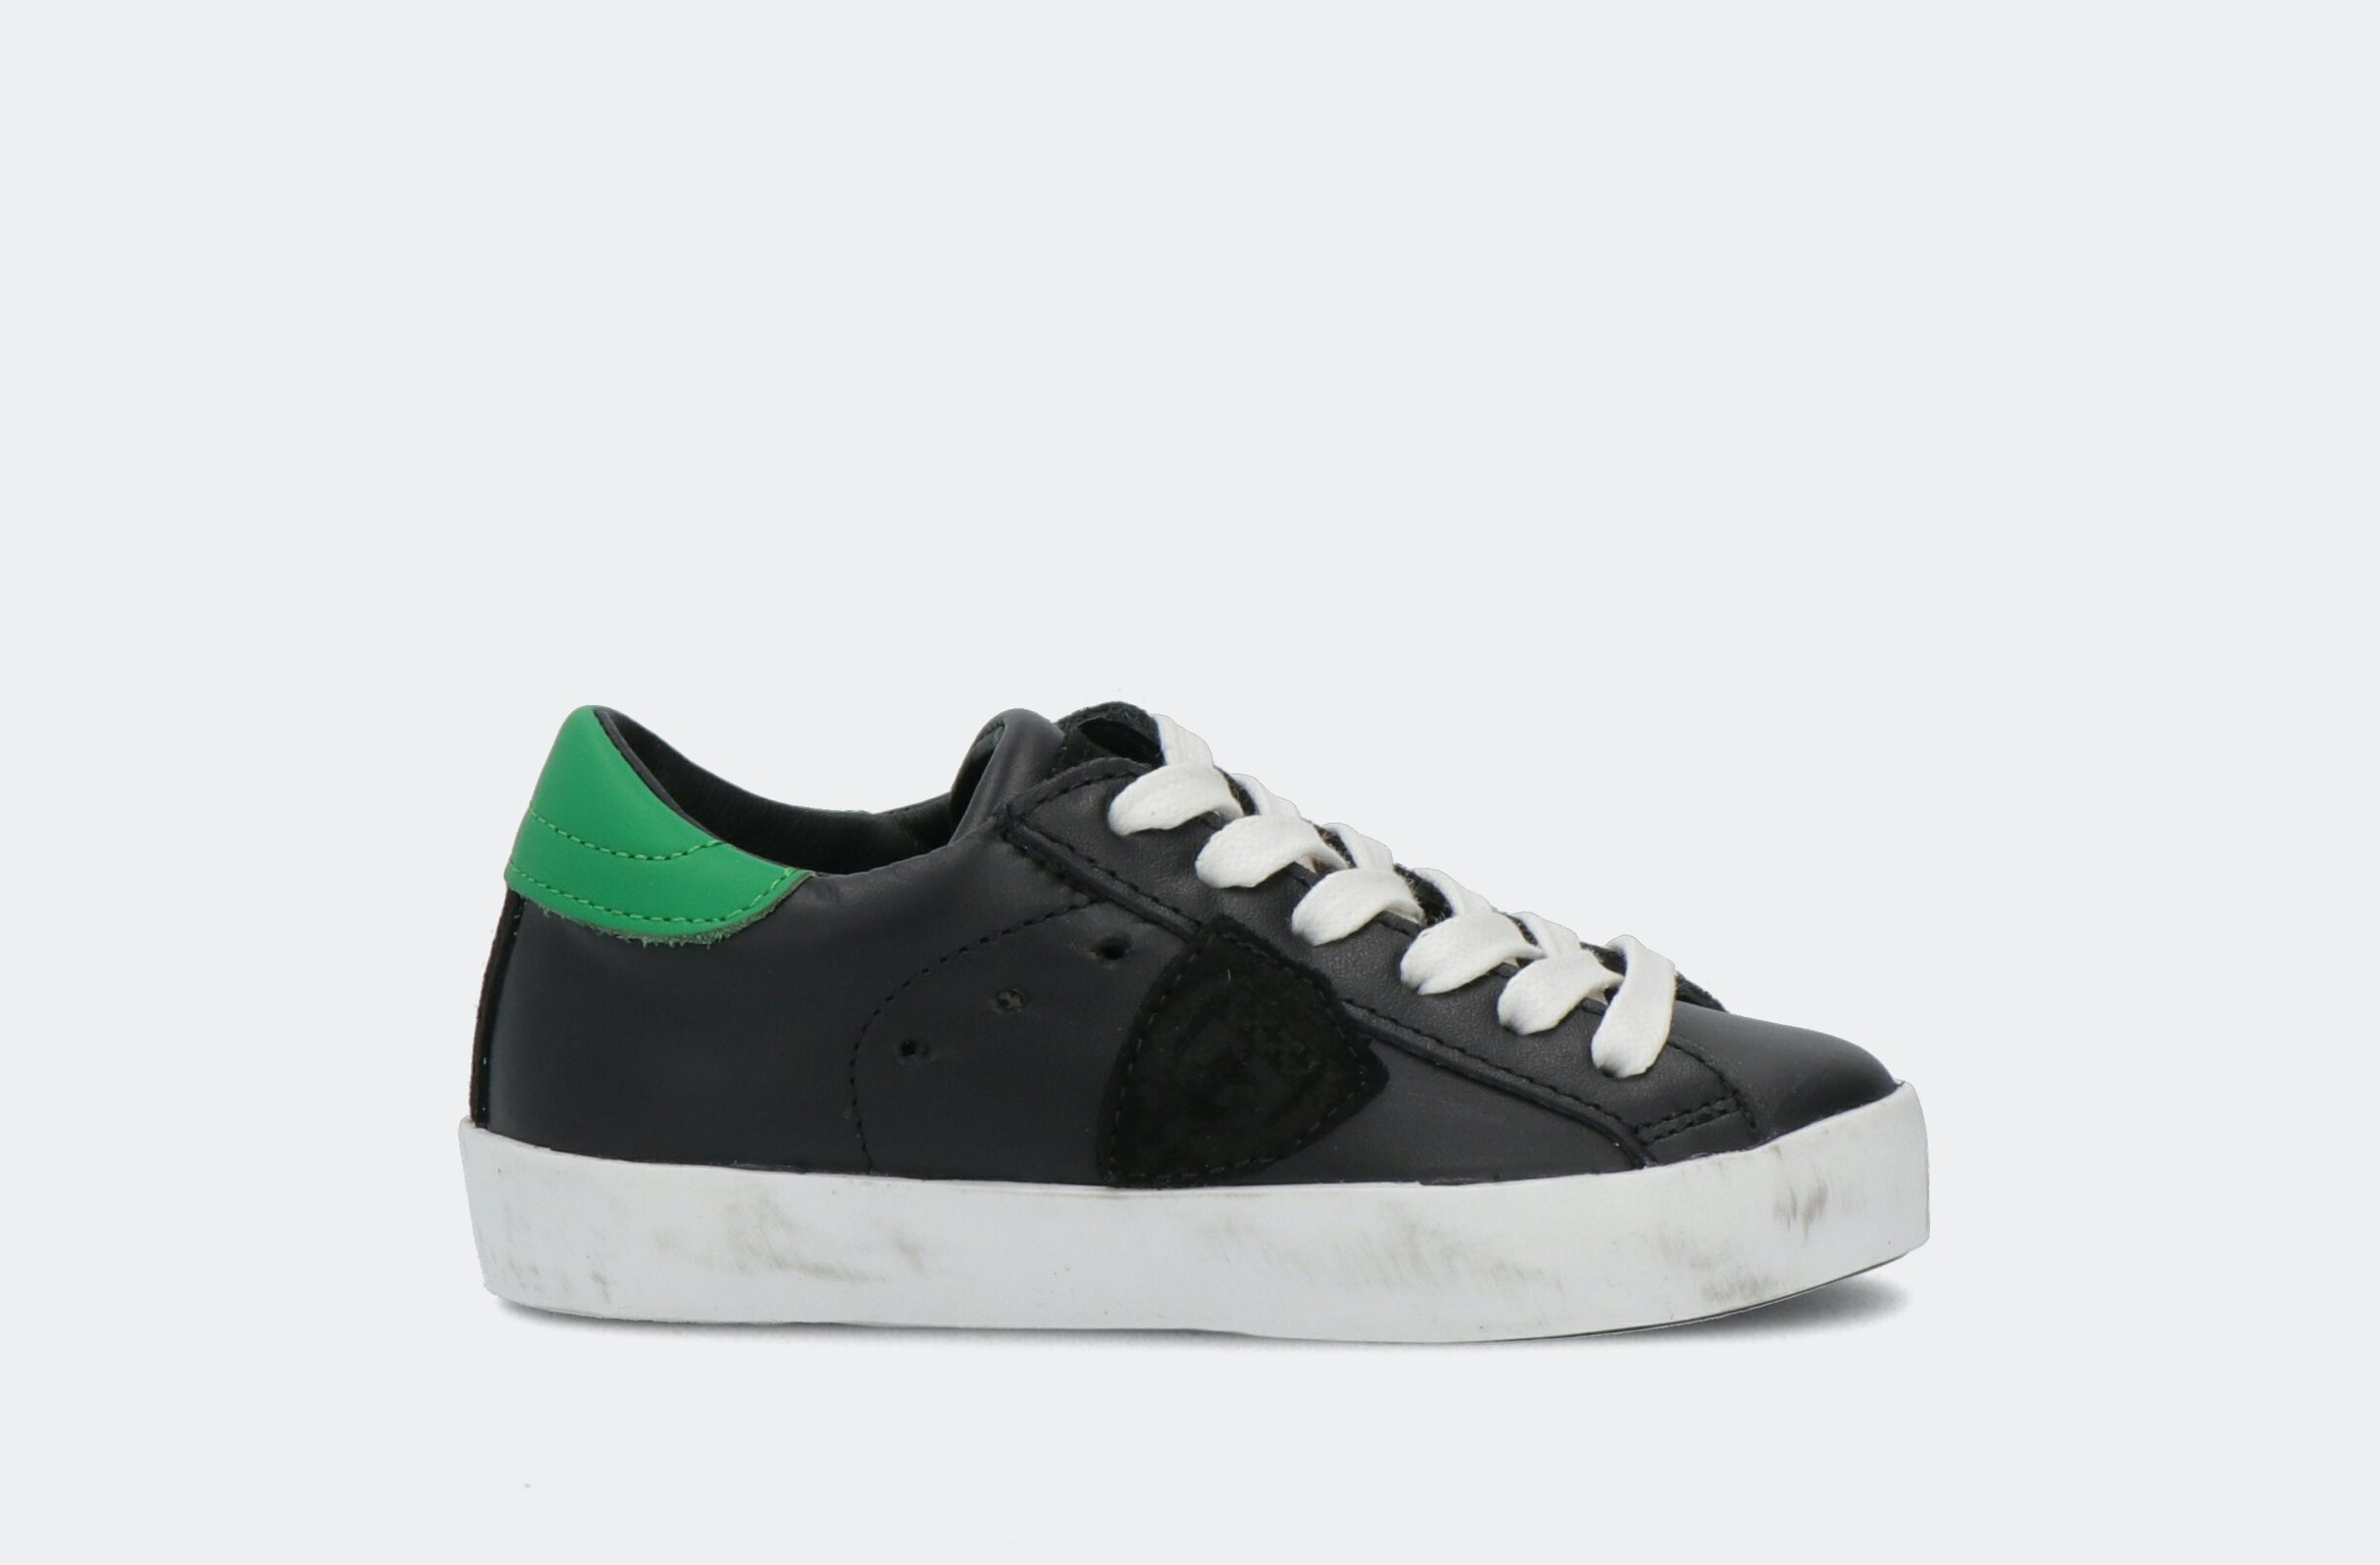 Paris L Juniorveau Noir Vert - Philippe Model Junior